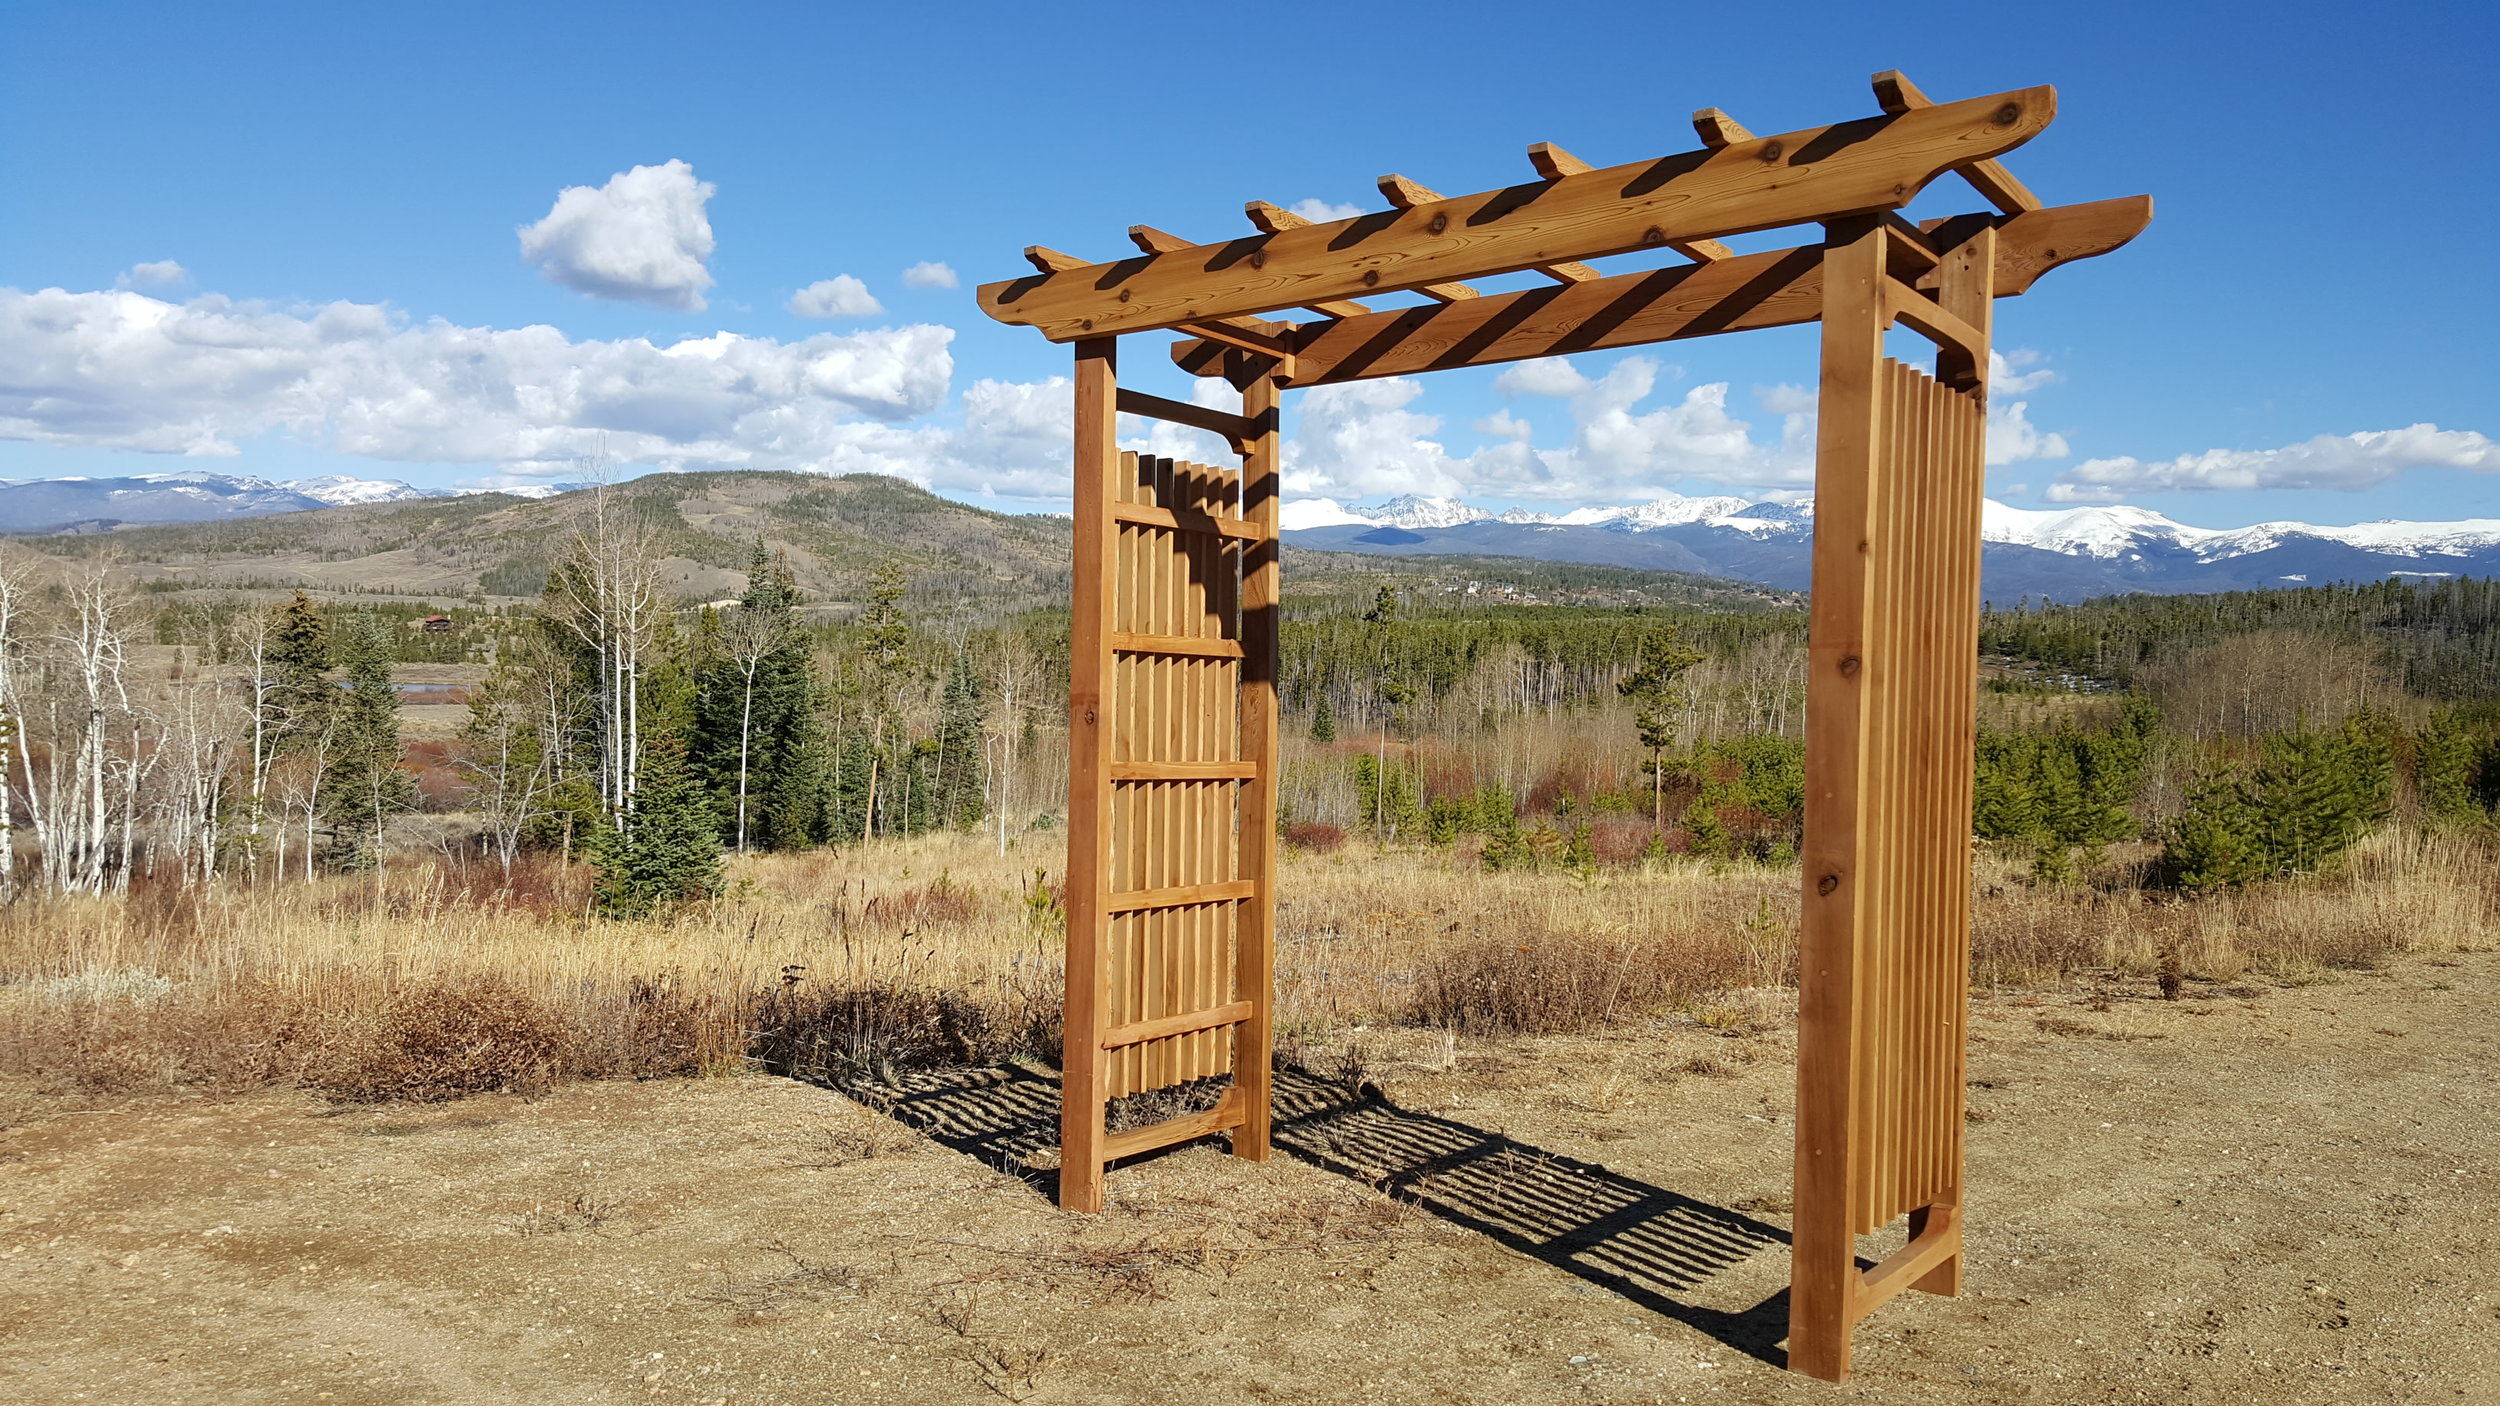 Custom arbors - Build the perfect arbor for your garden or wedding.